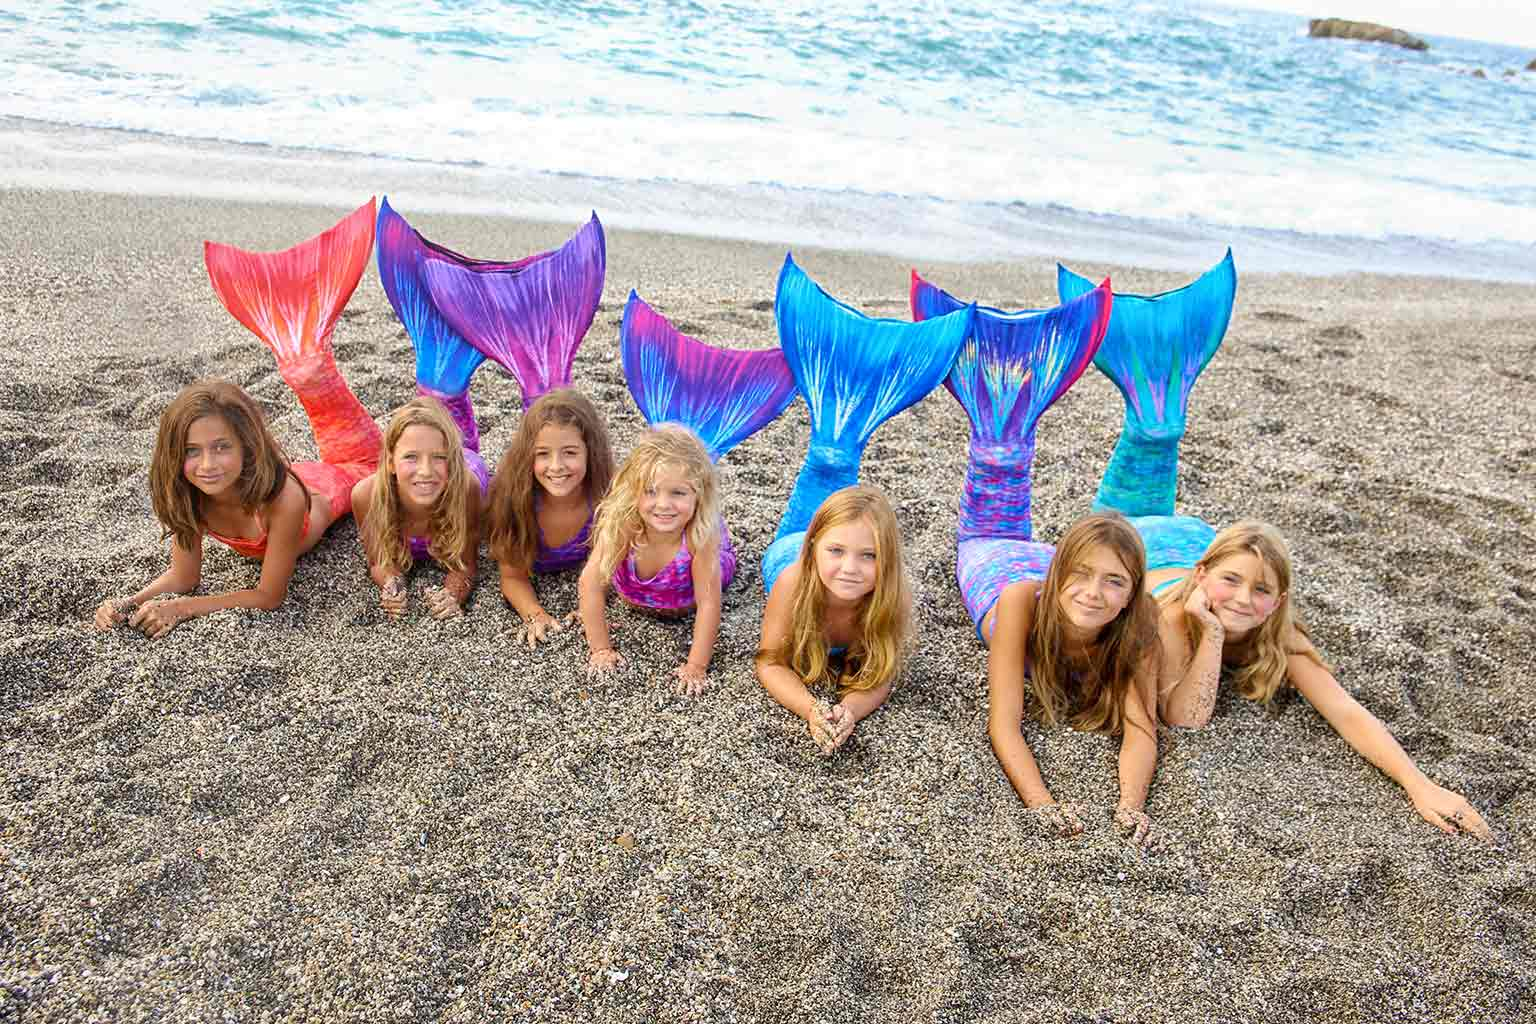 Merplanet Mermaid Tails at the beach